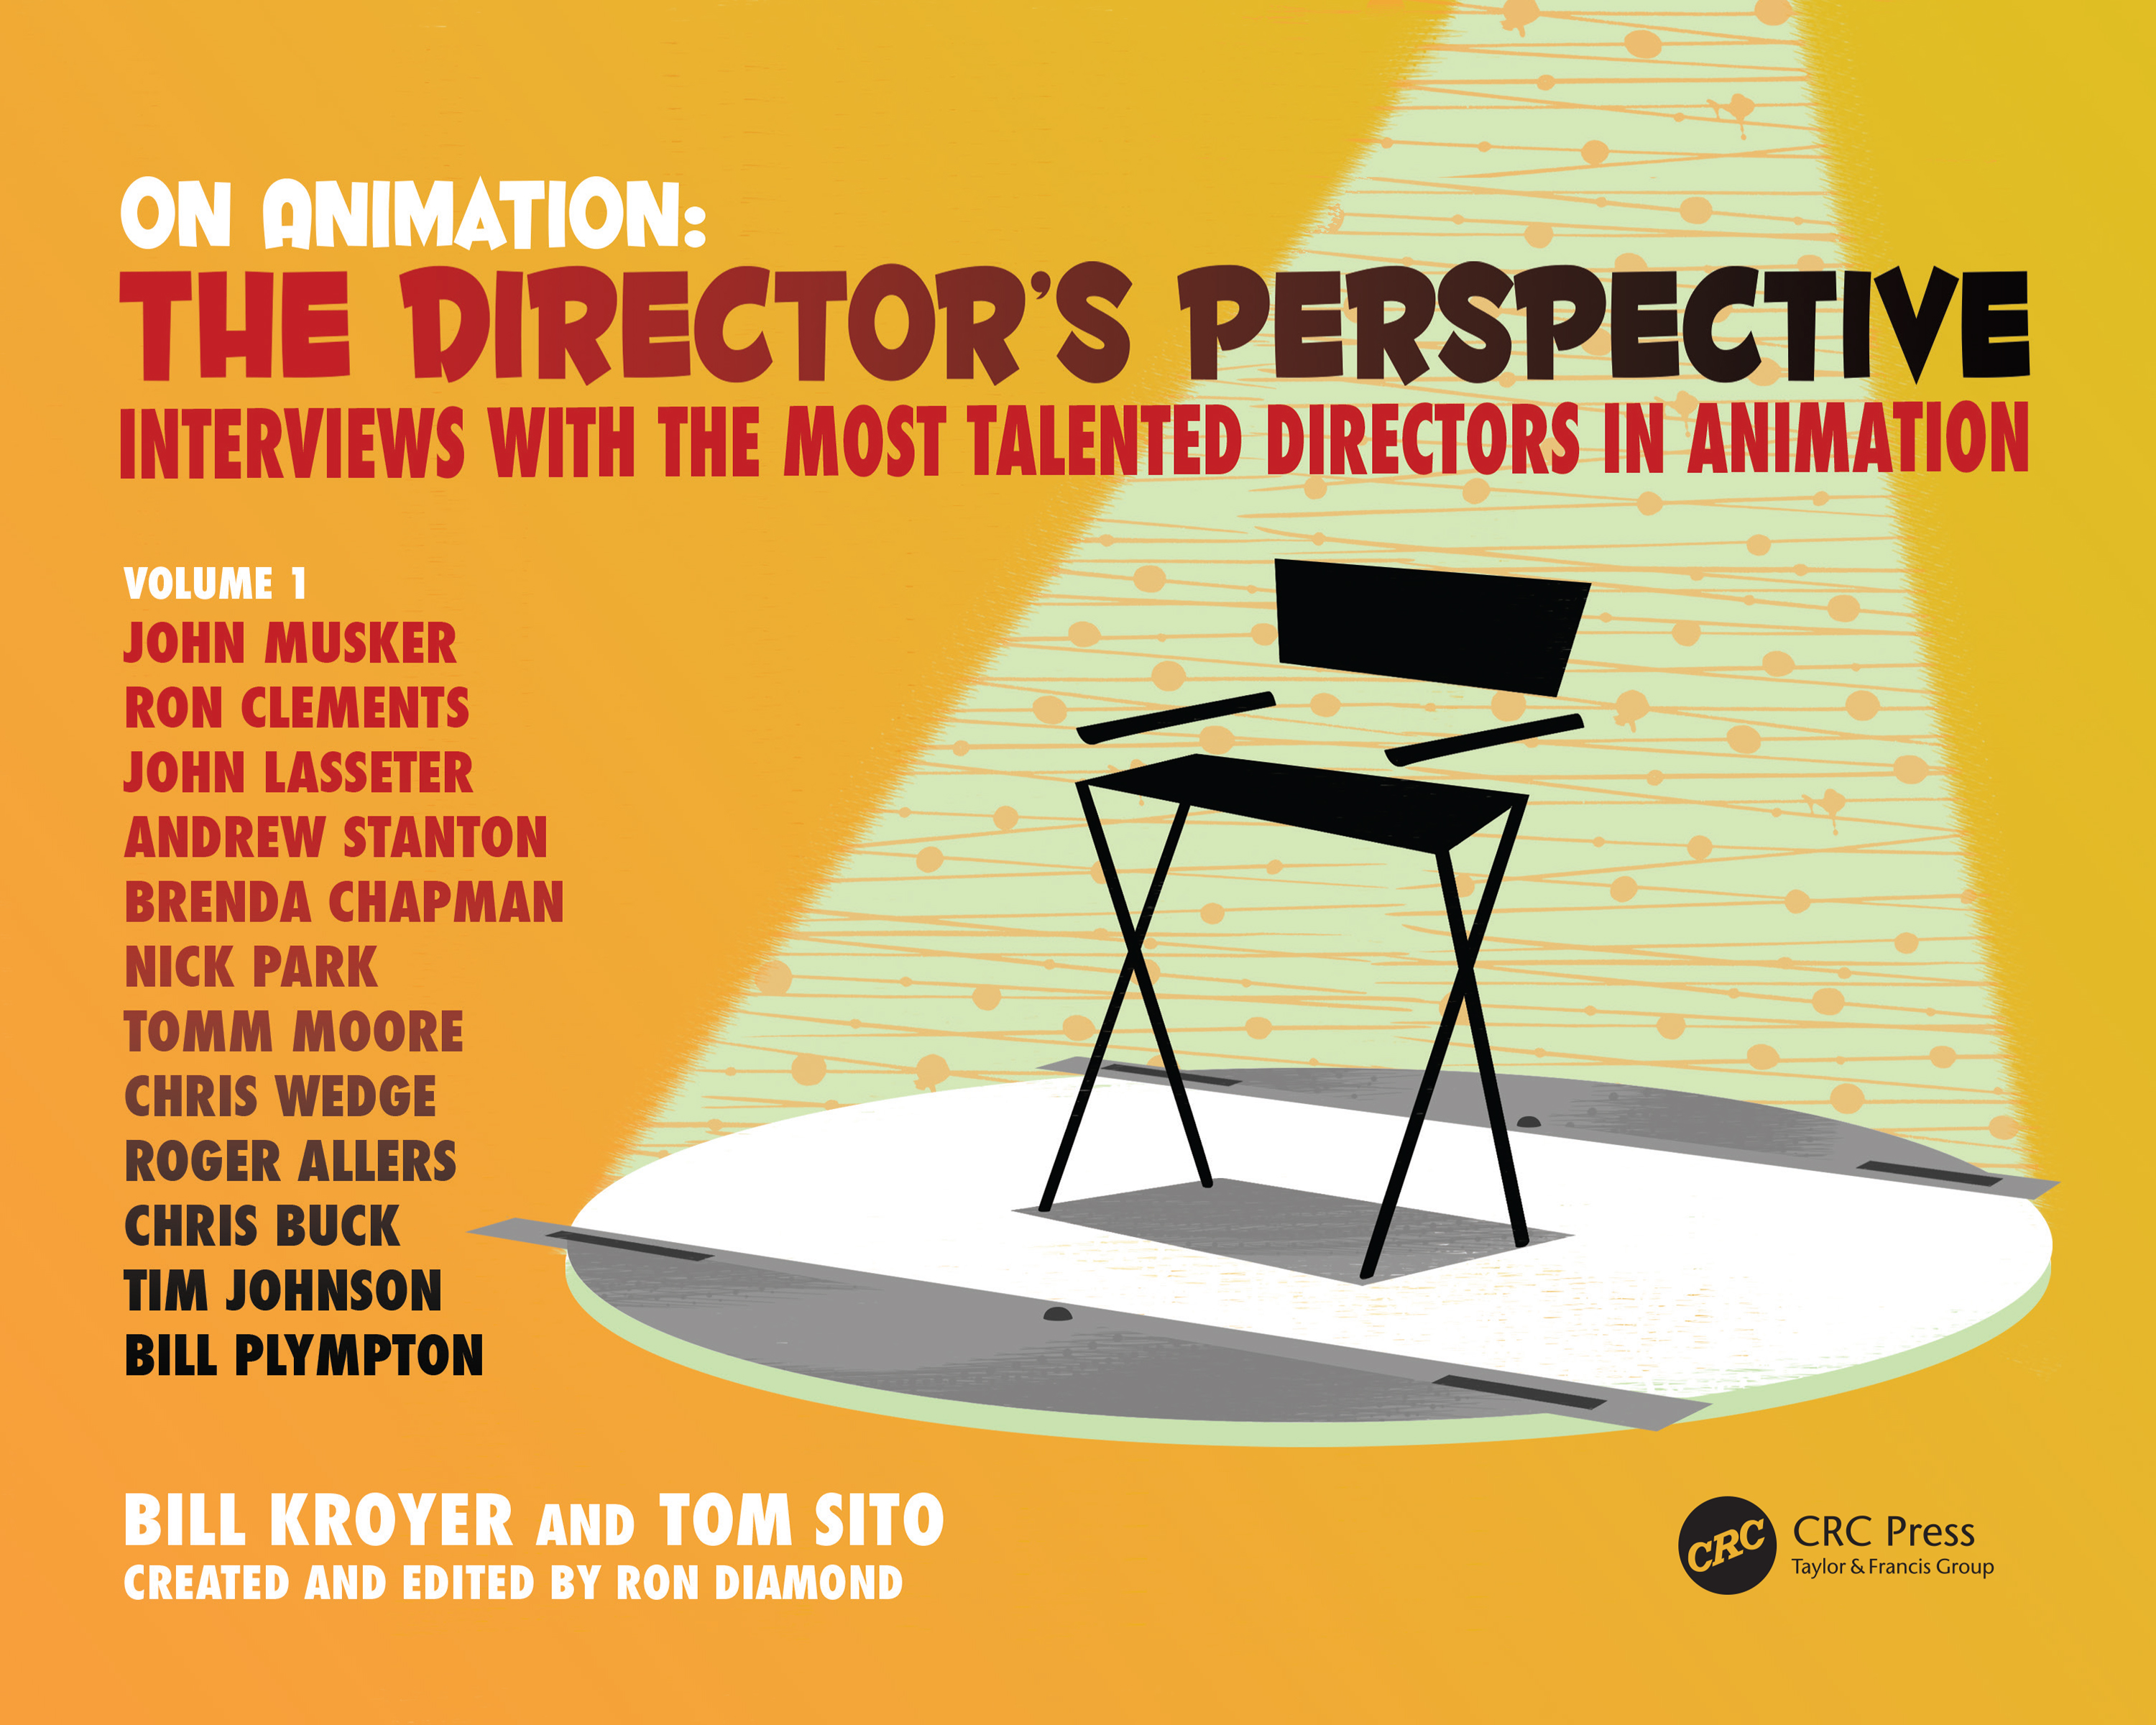 On Animation: The Director's Perspective Vol 1 book cover